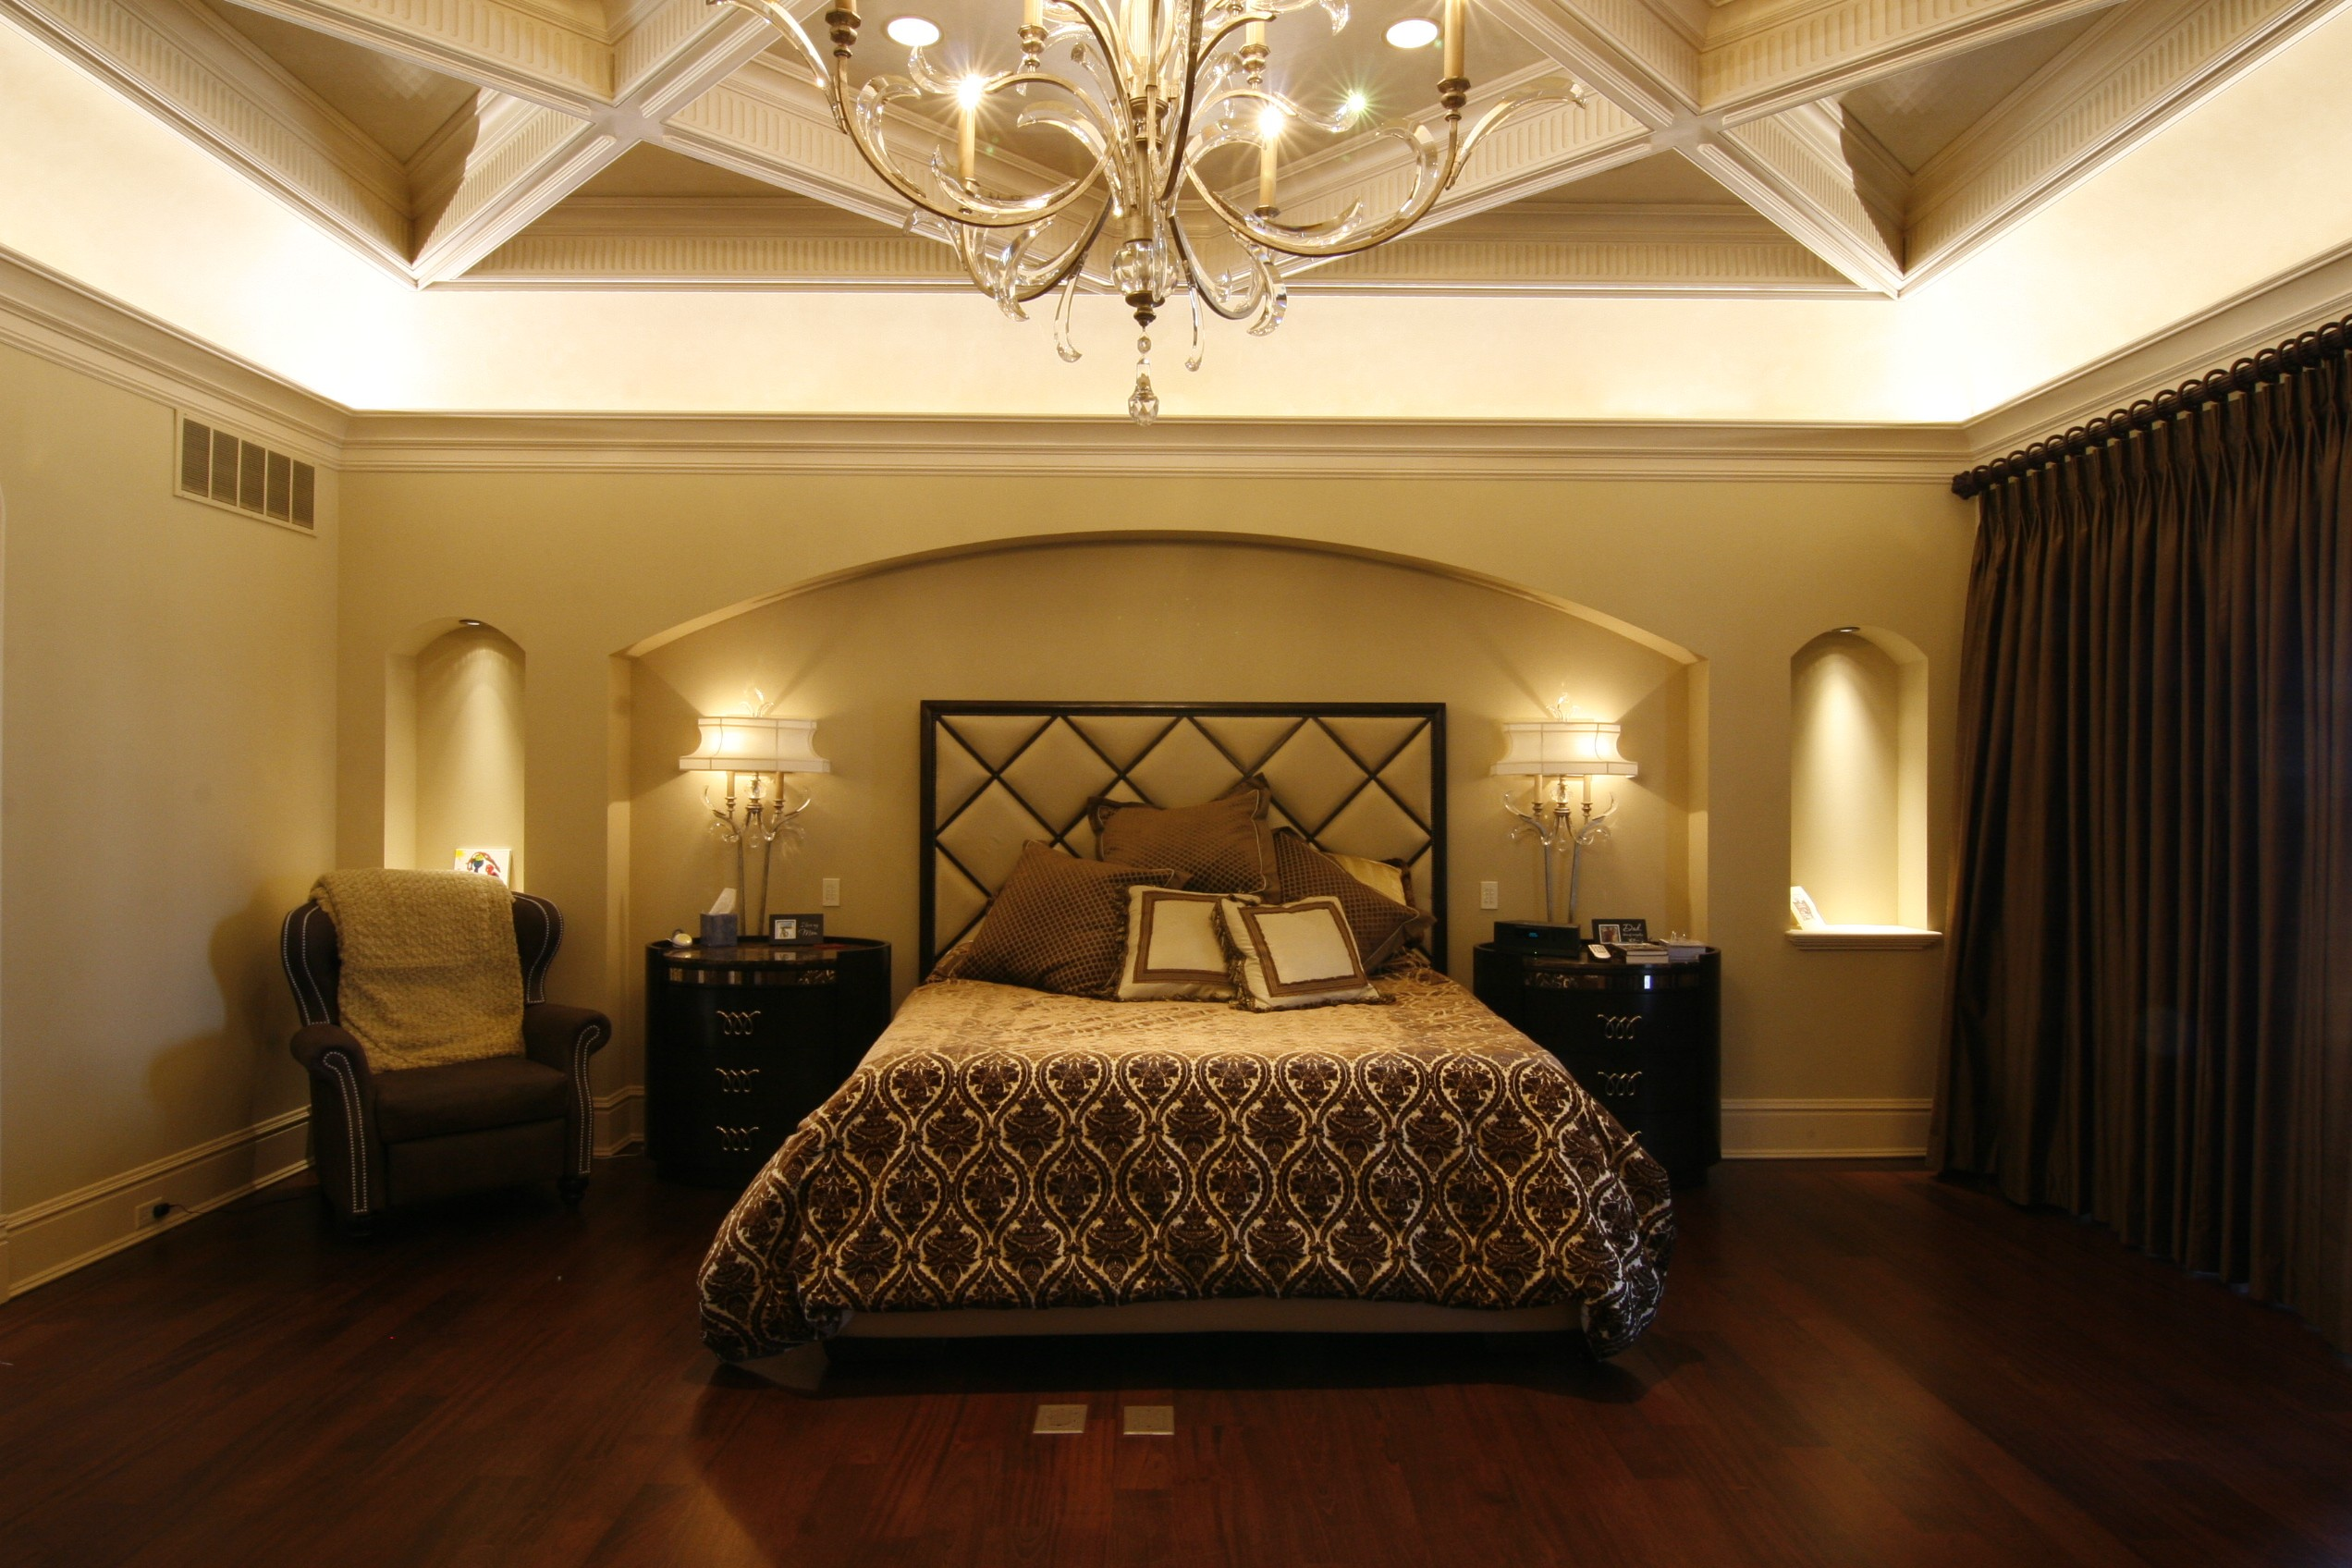 . 6 Bedrooms That Exude Romance   HuffPost Life